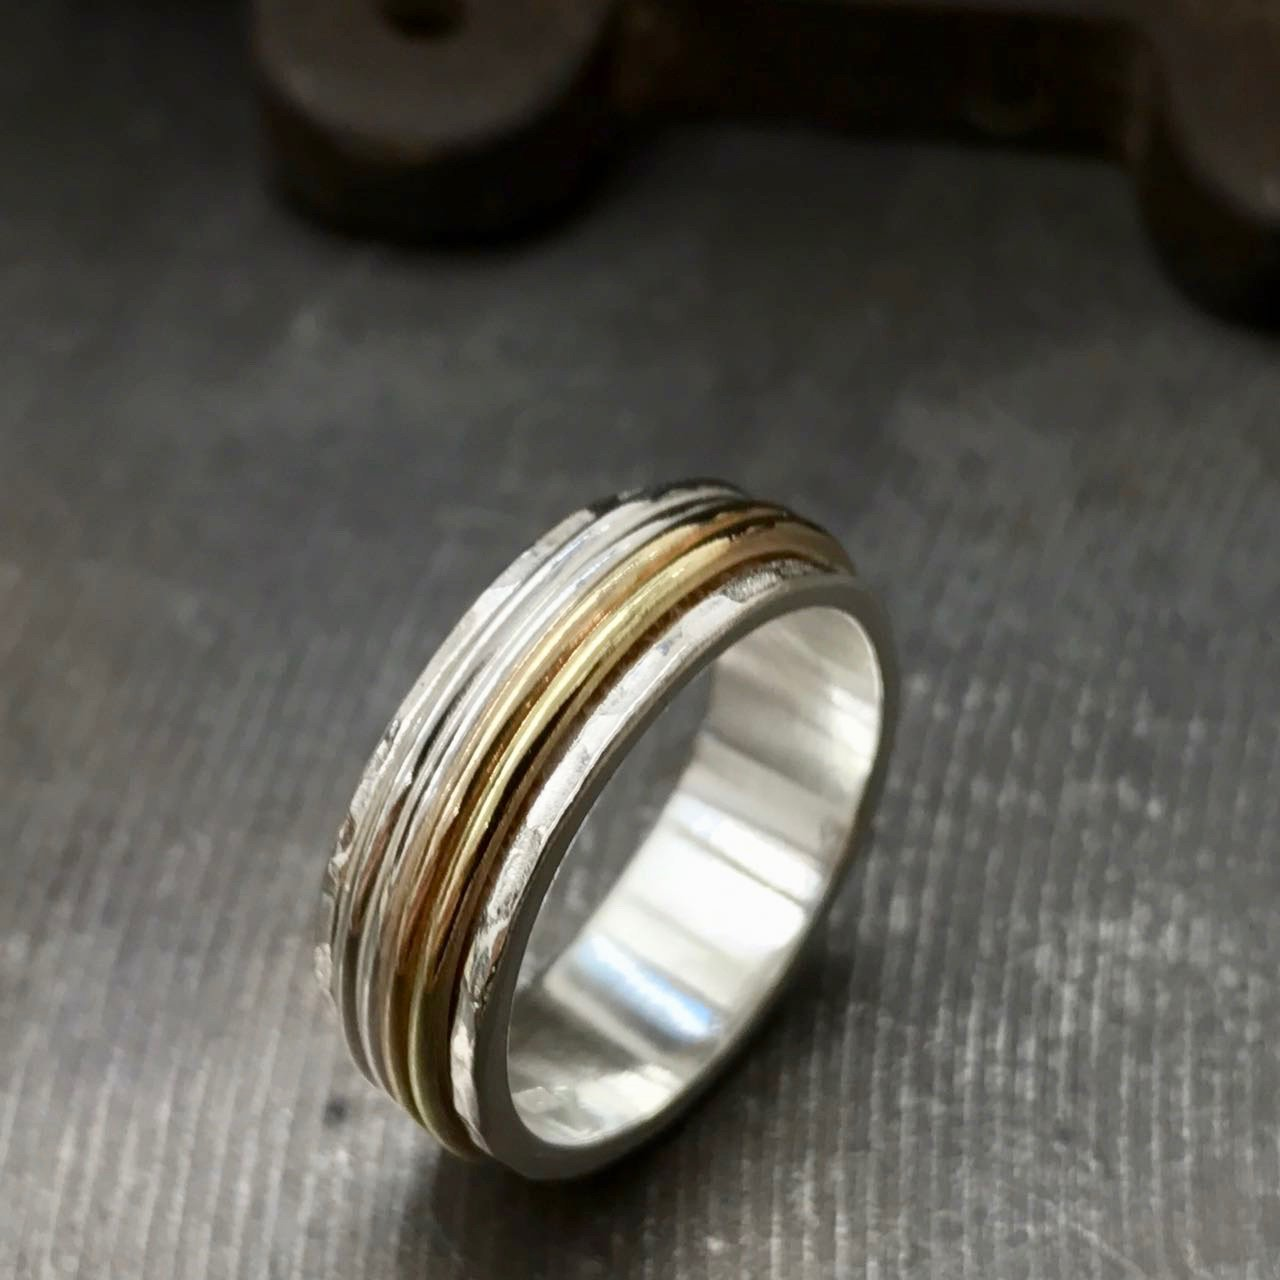 Silver and gold multi band narrow spinner ring size 5 to 11